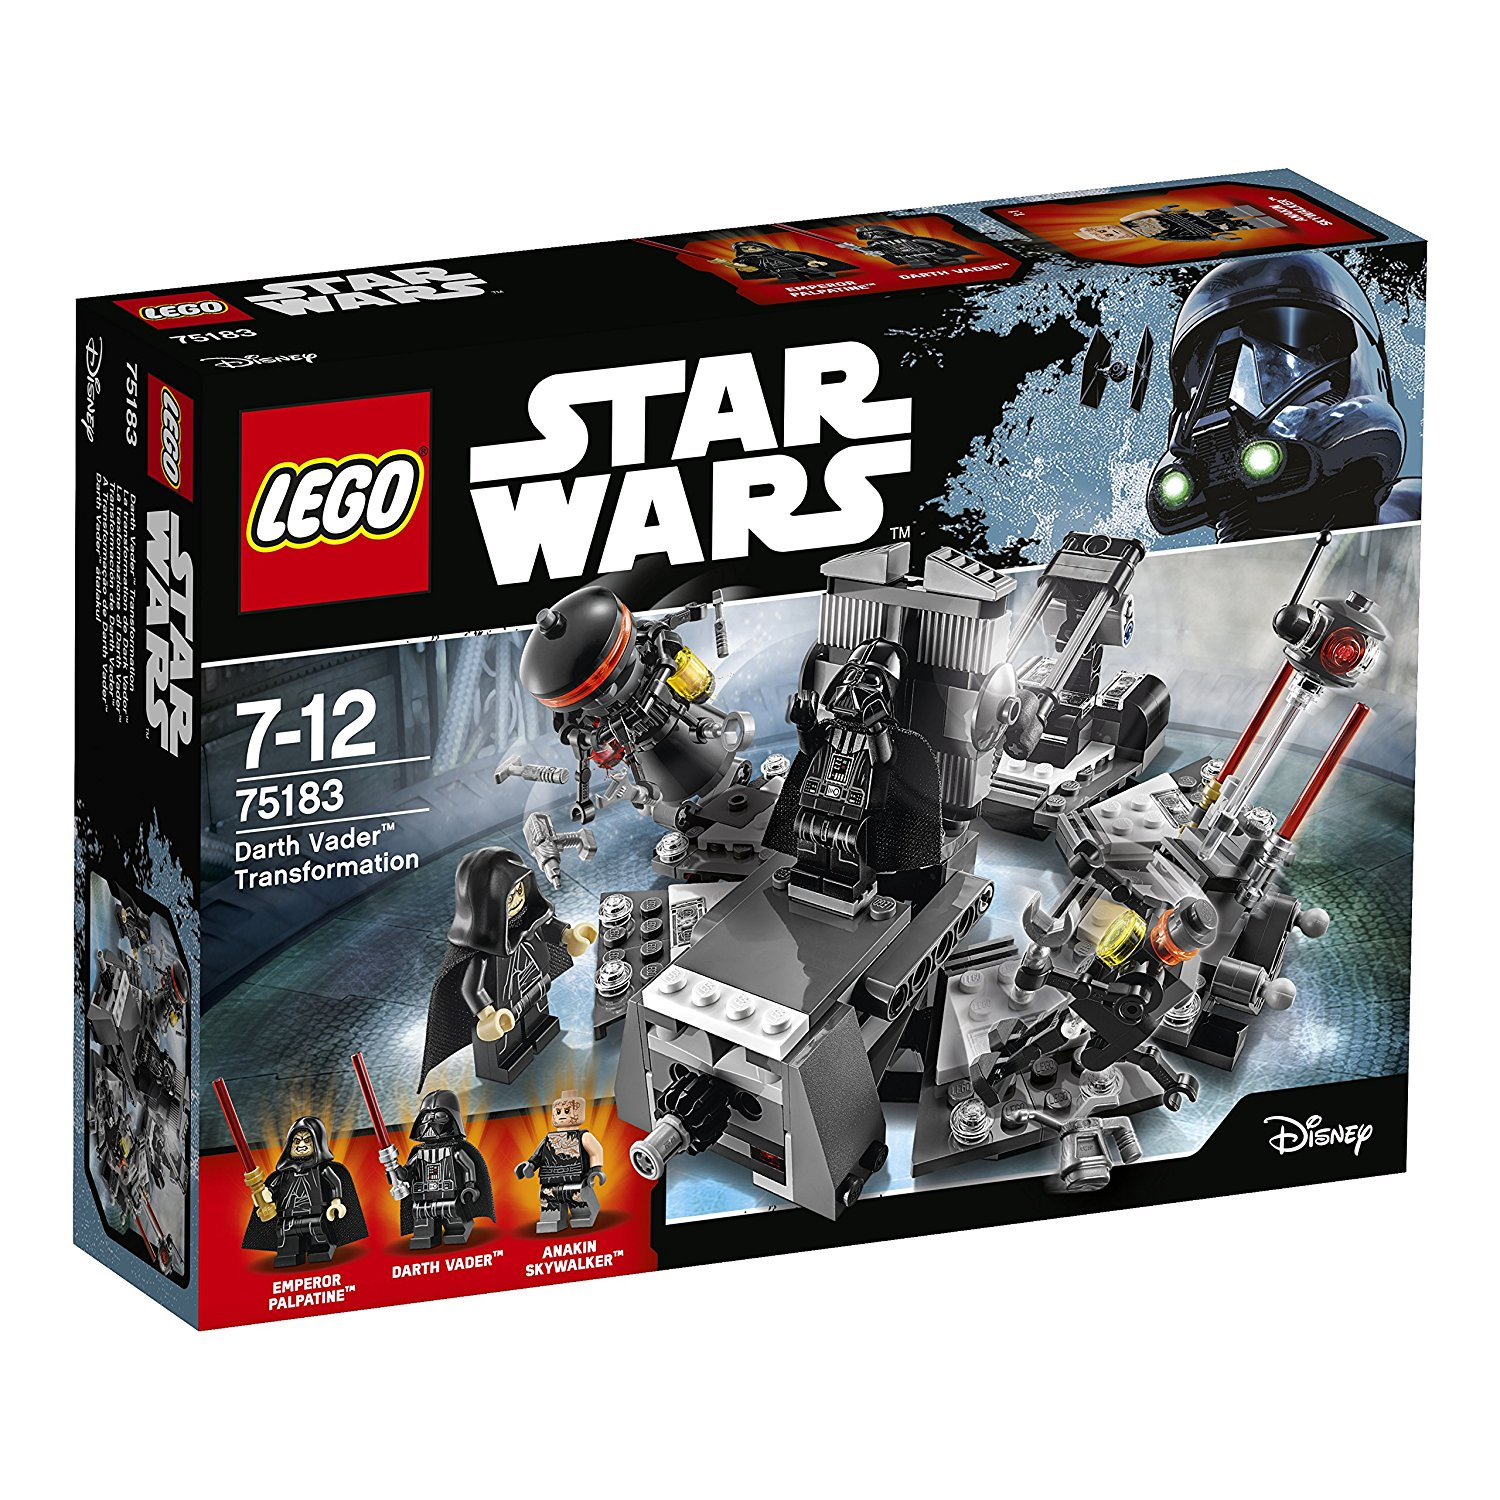 LEGO - Star Wars - La transformation de Dark Vador